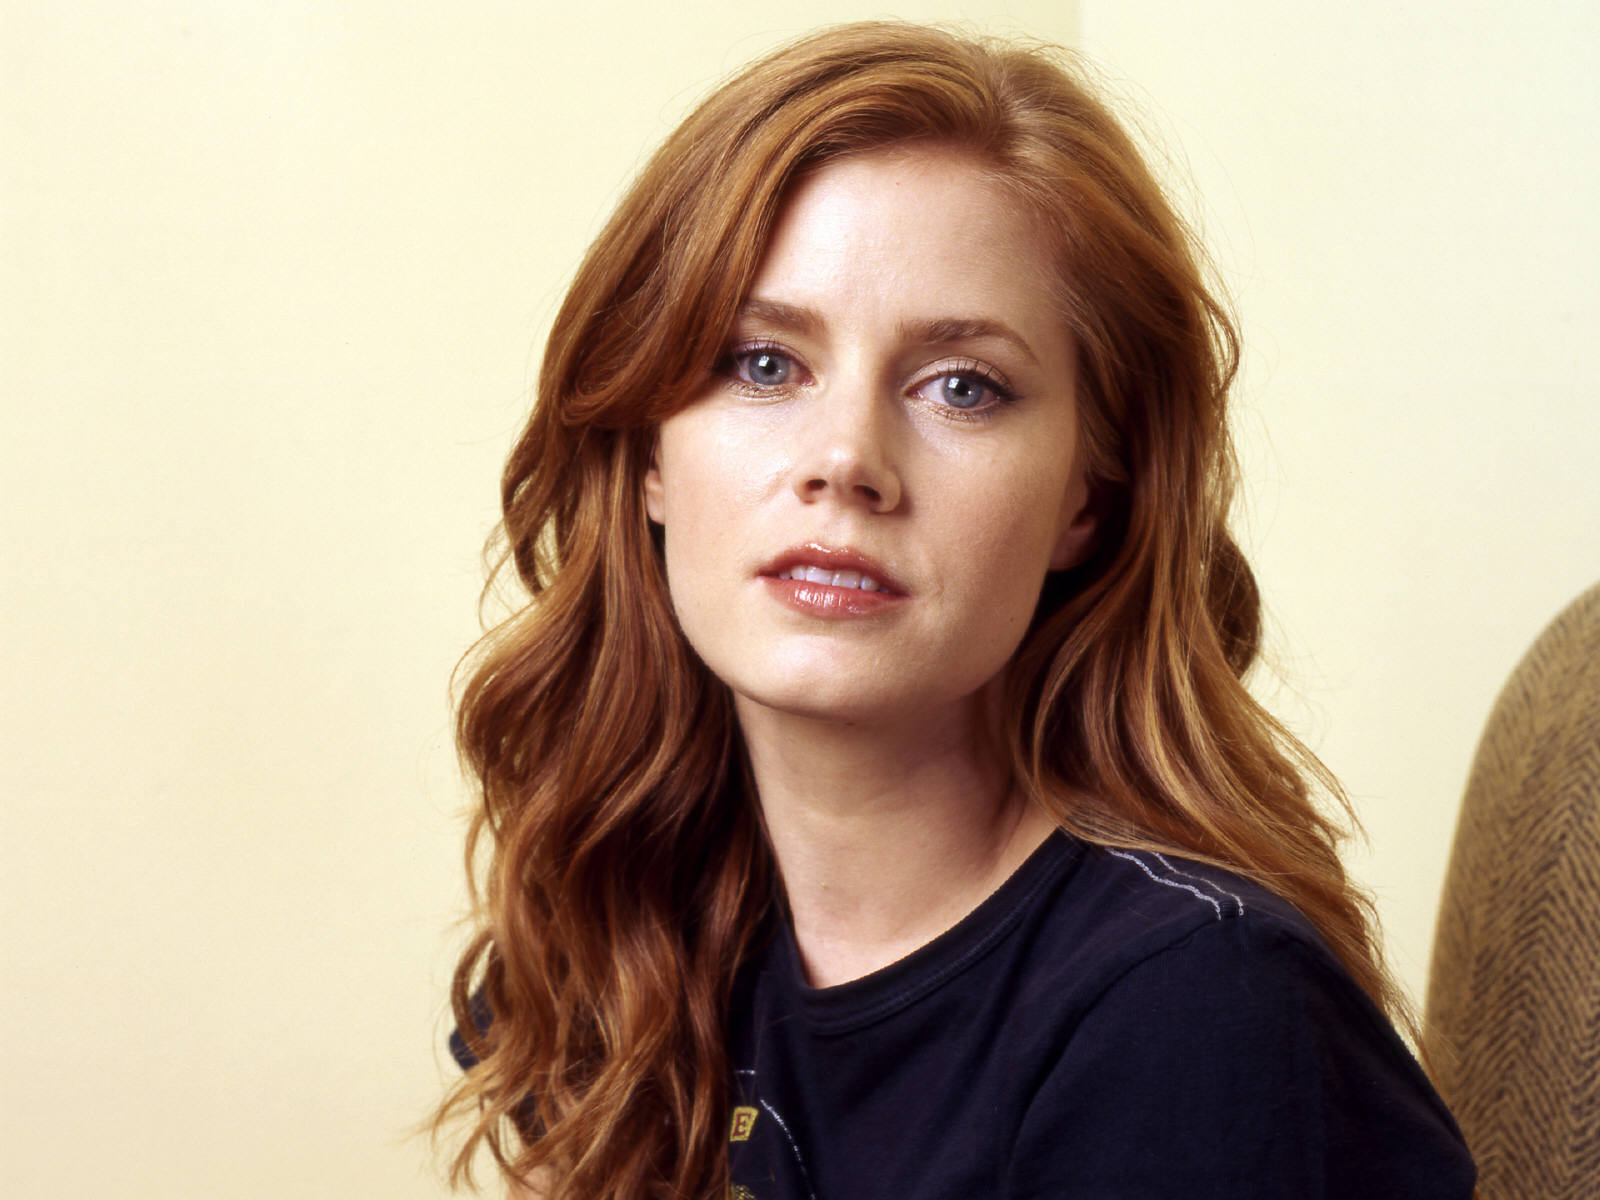 Amy Adams sur HBO pour Jean-Marc Vallée (Dallas Buyers Club) dans Films Amy-Adams-amy-adams-712650_1600_1200